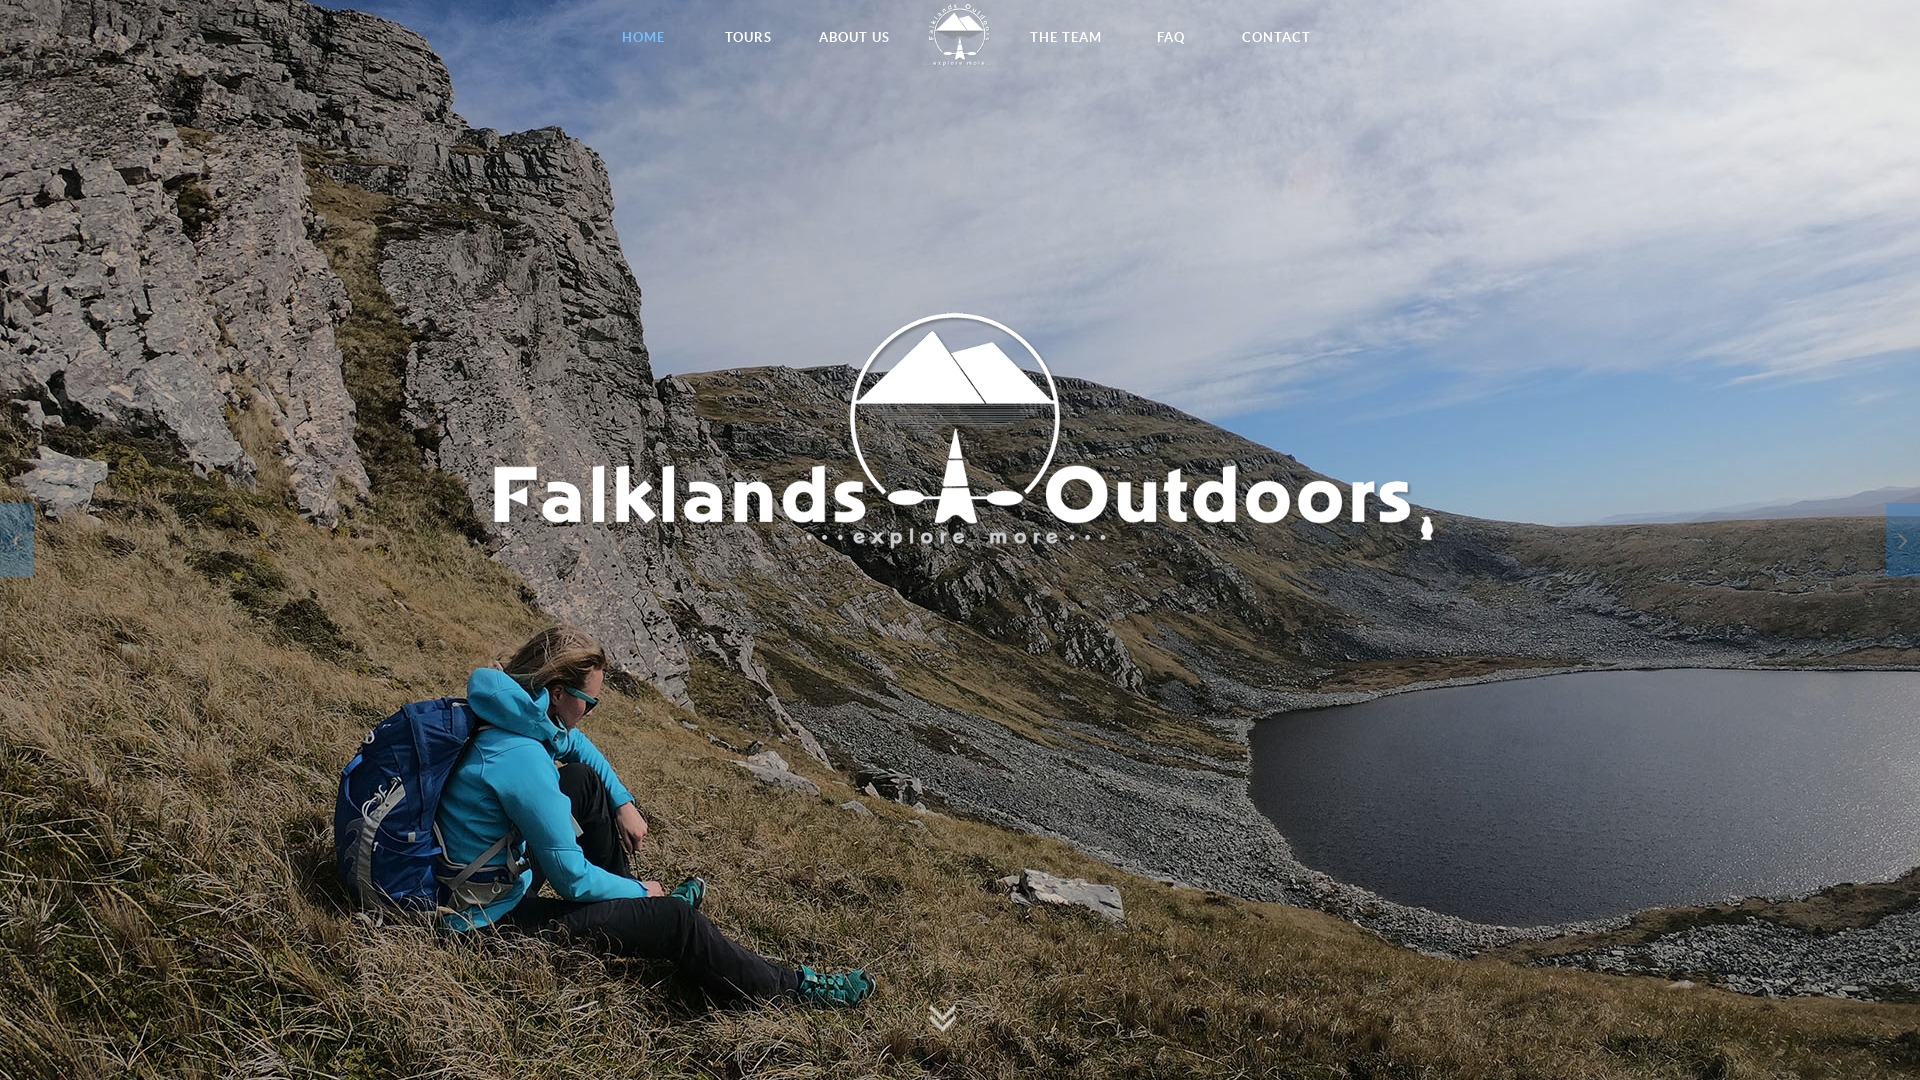 Falklands Outdoors